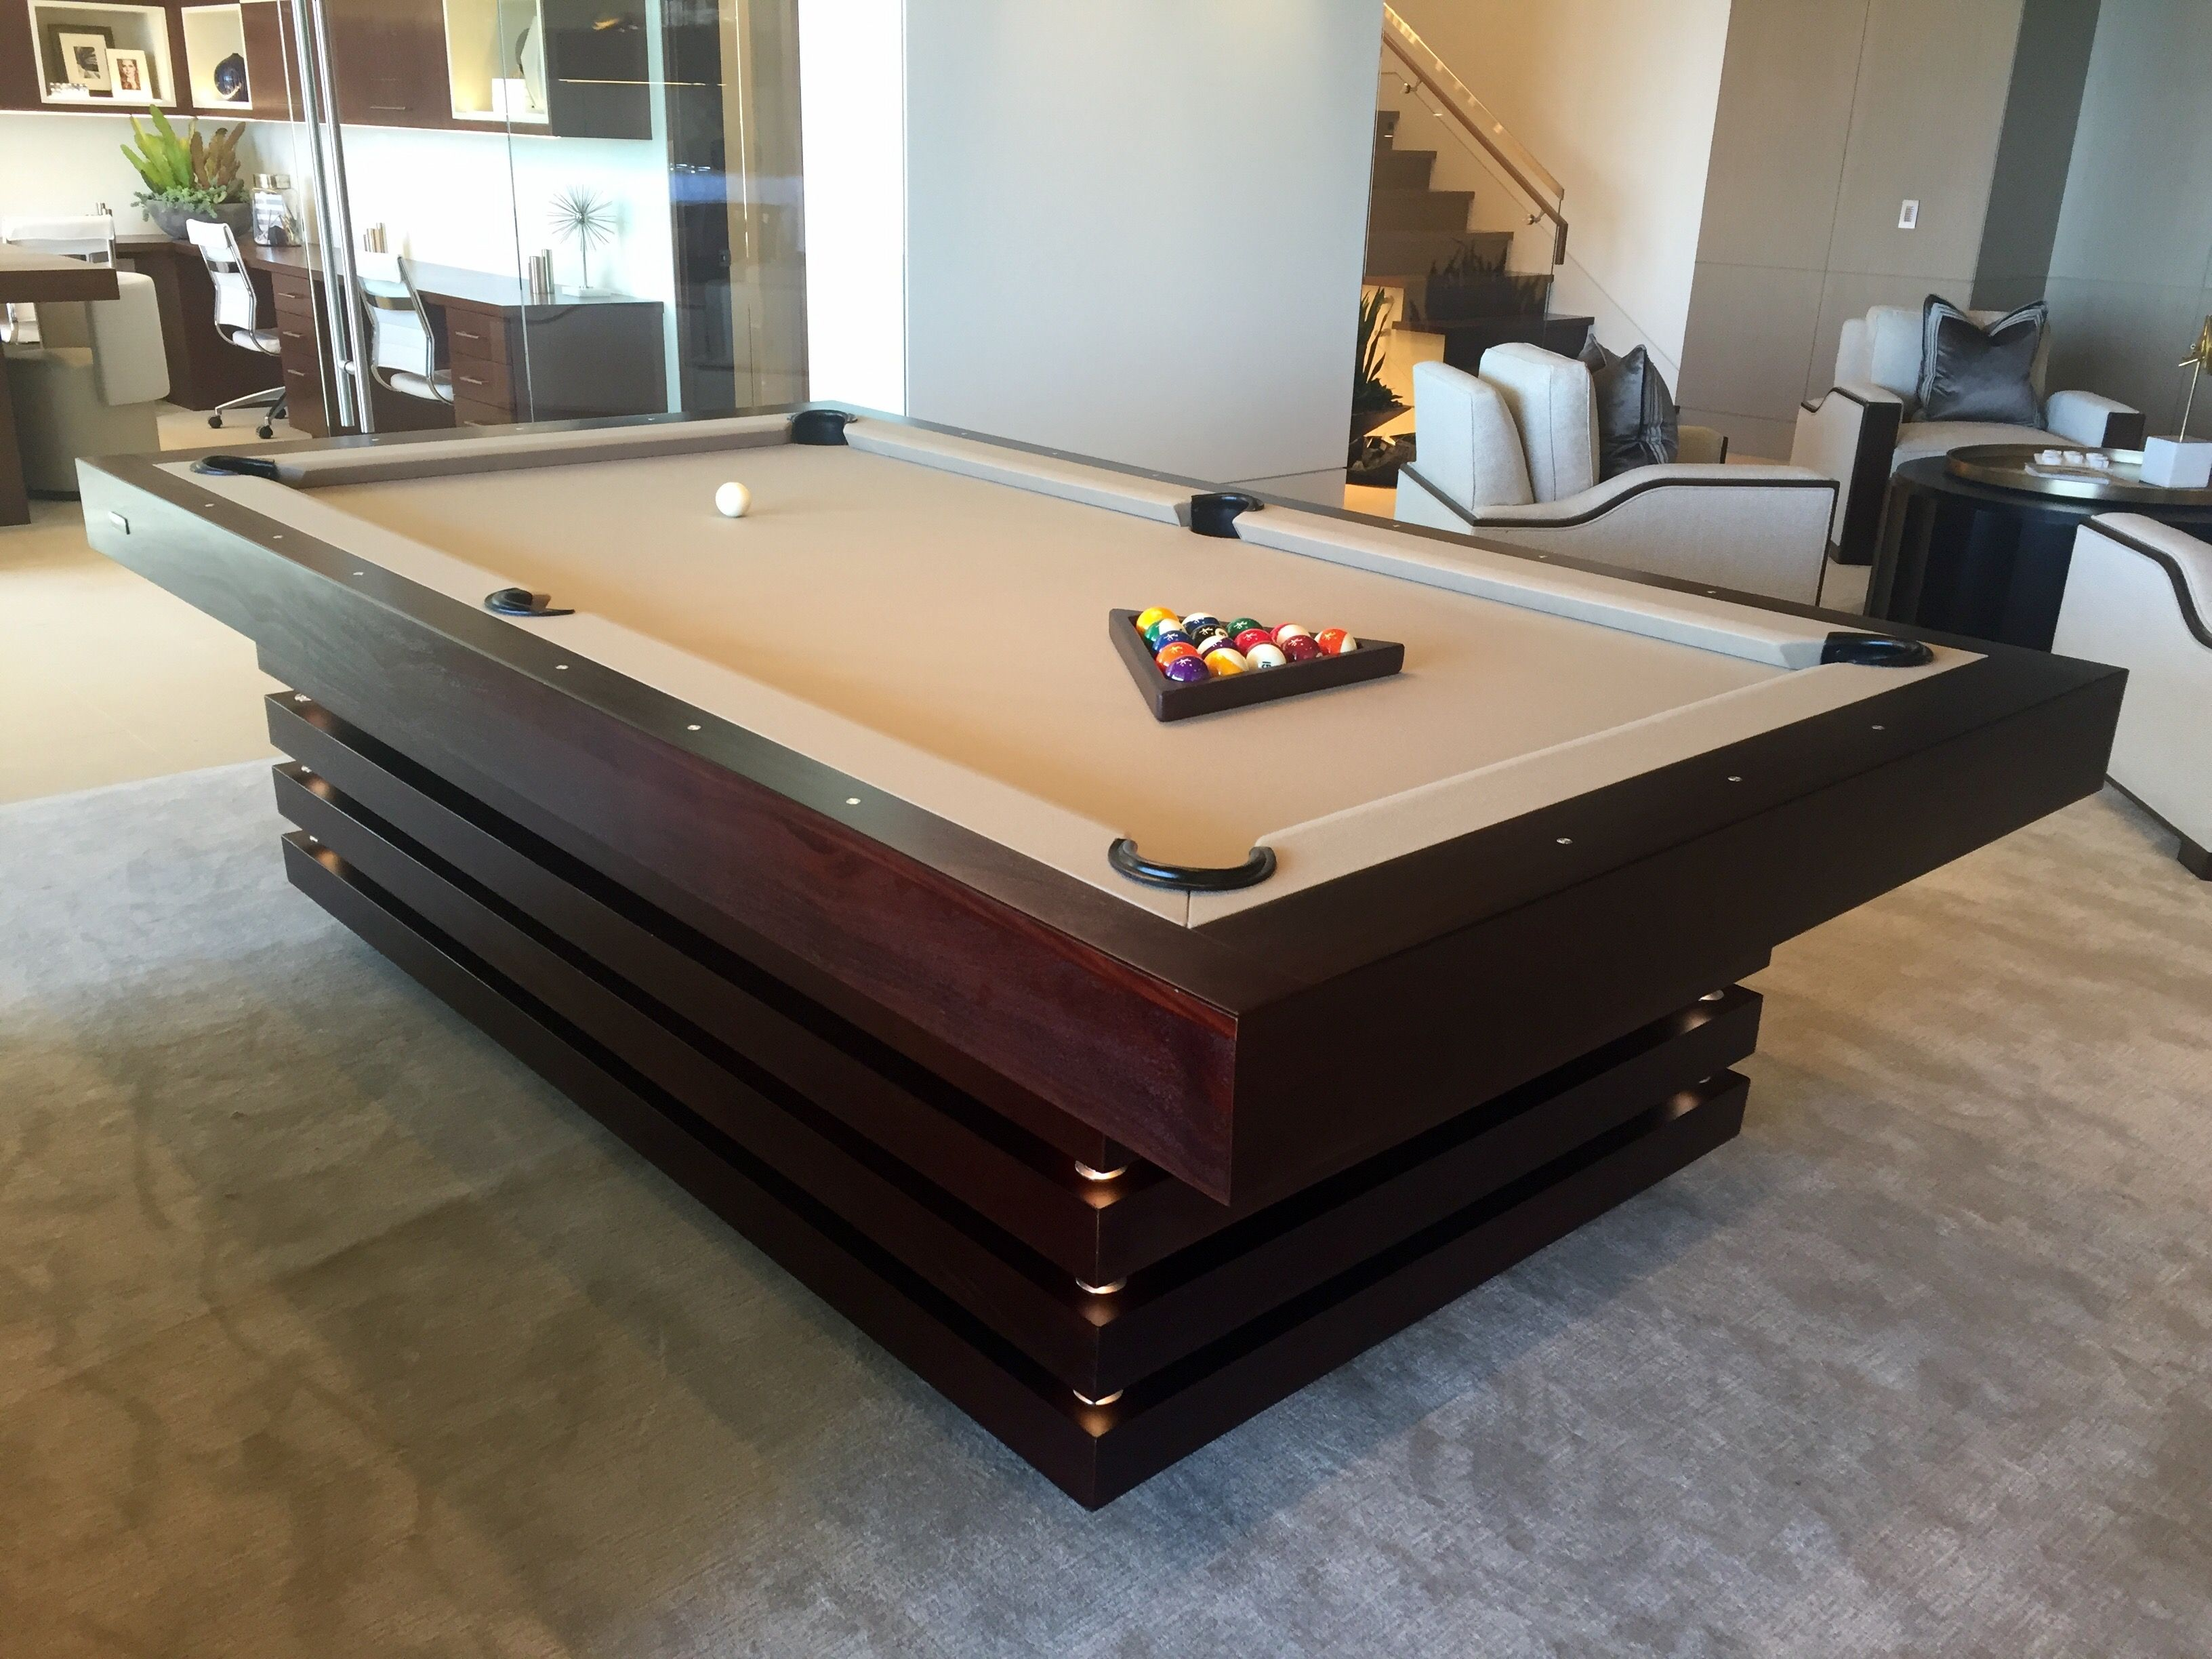 Drawing Influence From The Stealth Bomber Aircraft 11 Ravens Brings A Model That Is Precision Engineered And Uncompromi Modern Pool Table Billiards Pool Table